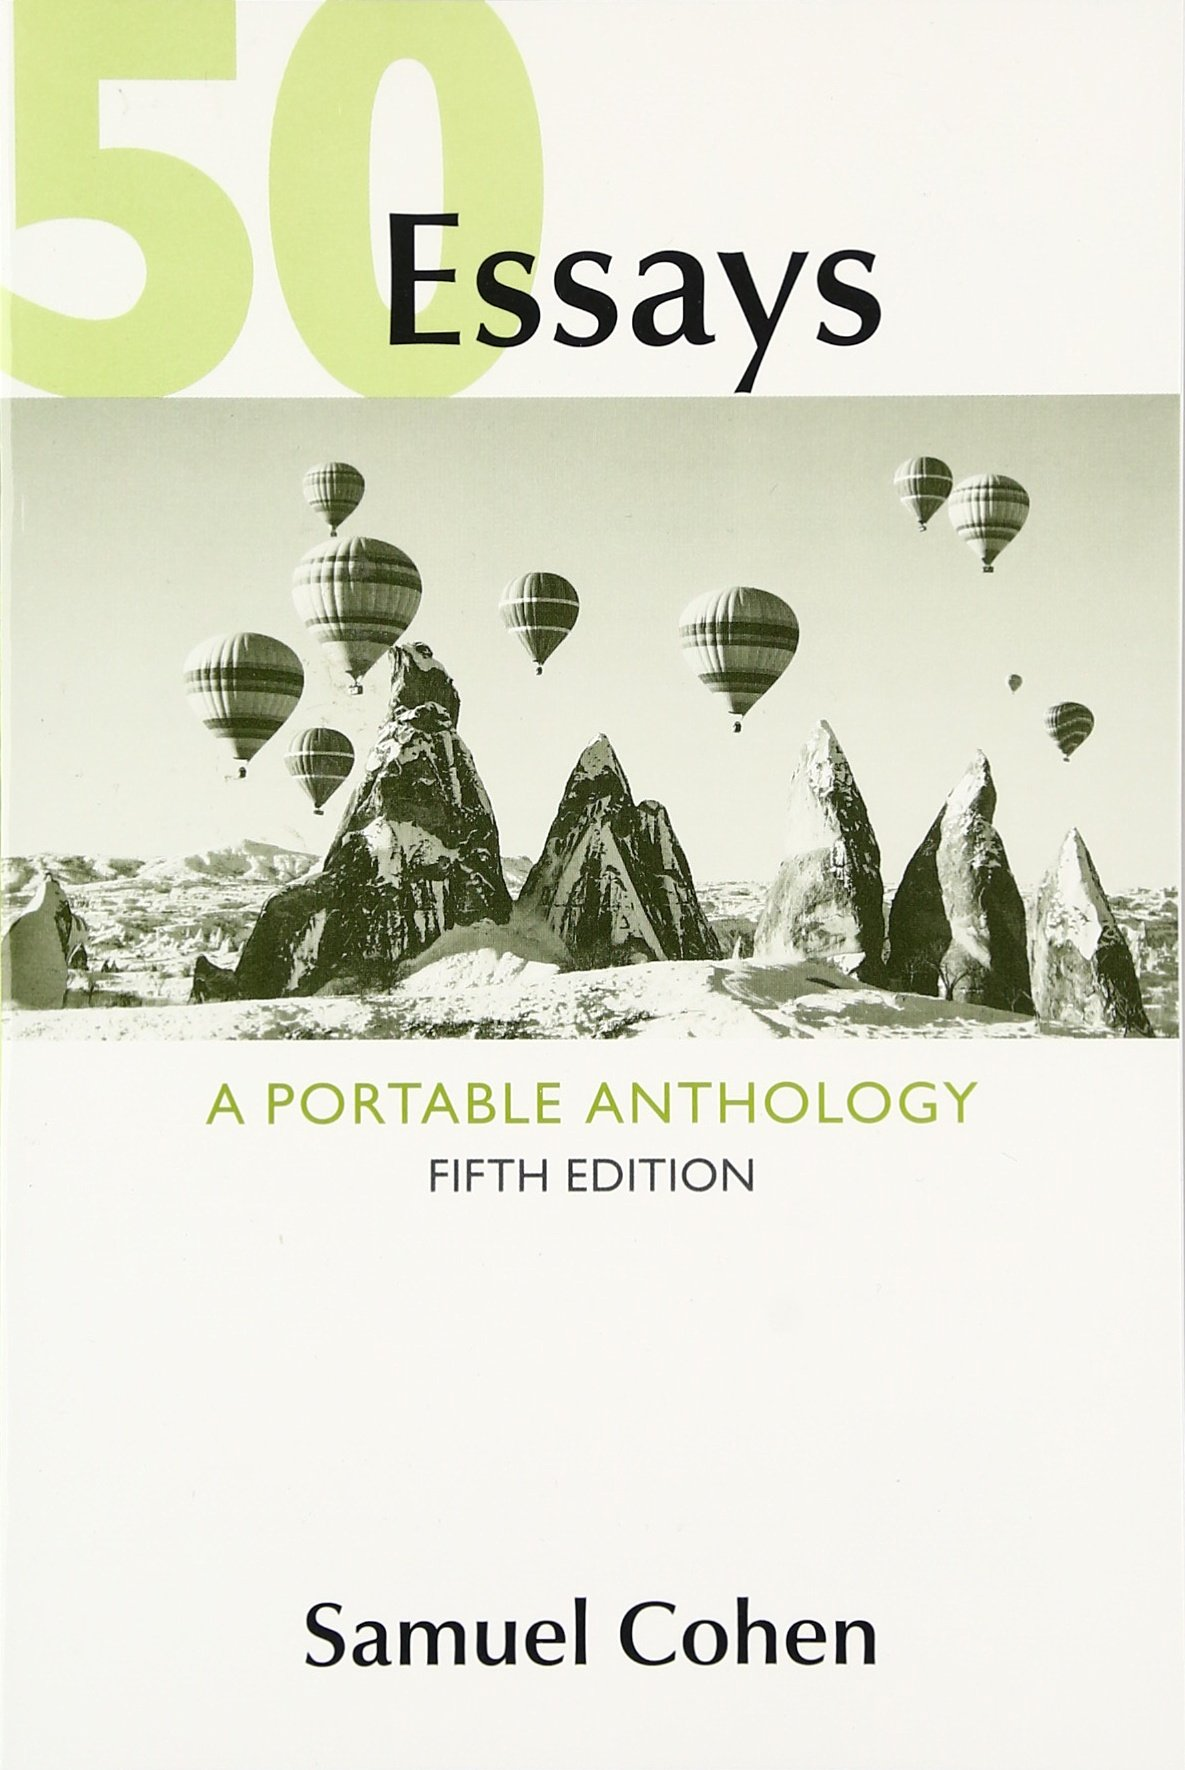 Amazon 50 essays a portable anthology samuel cohen essays